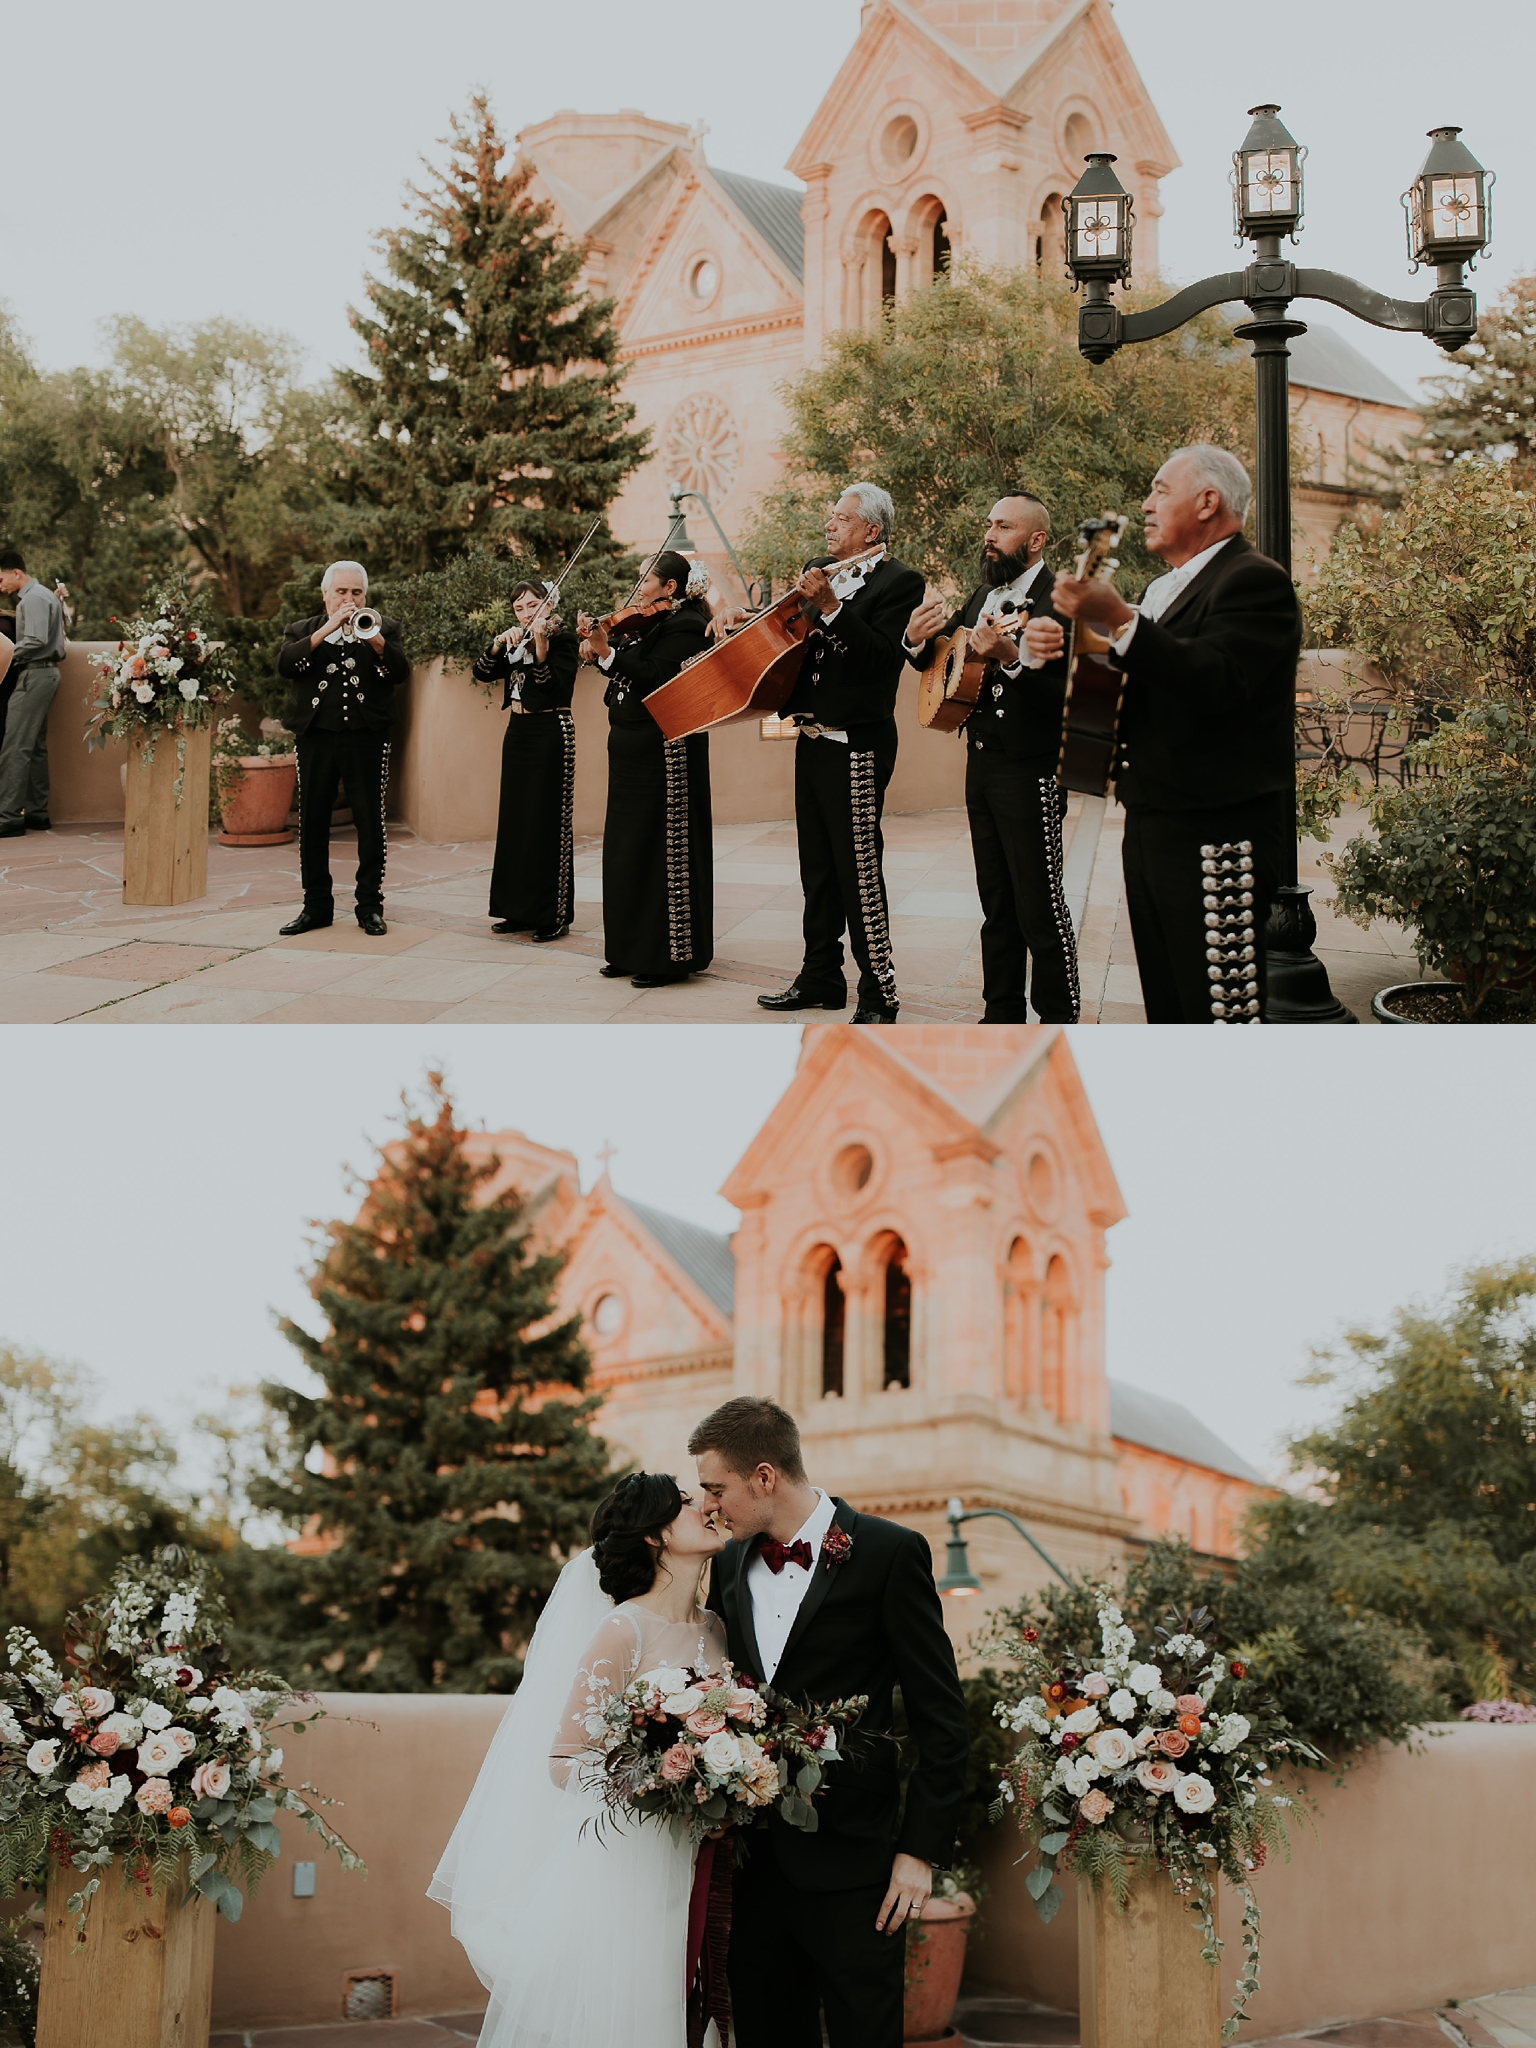 Alicia+lucia+photography+-+albuquerque+wedding+photographer+-+santa+fe+wedding+photography+-+new+mexico+wedding+photographer+-+new+mexico+wedding+-+santa+fe+wedding+-+albuquerque+wedding+-+southwest+wedding+traditions_0036.jpg